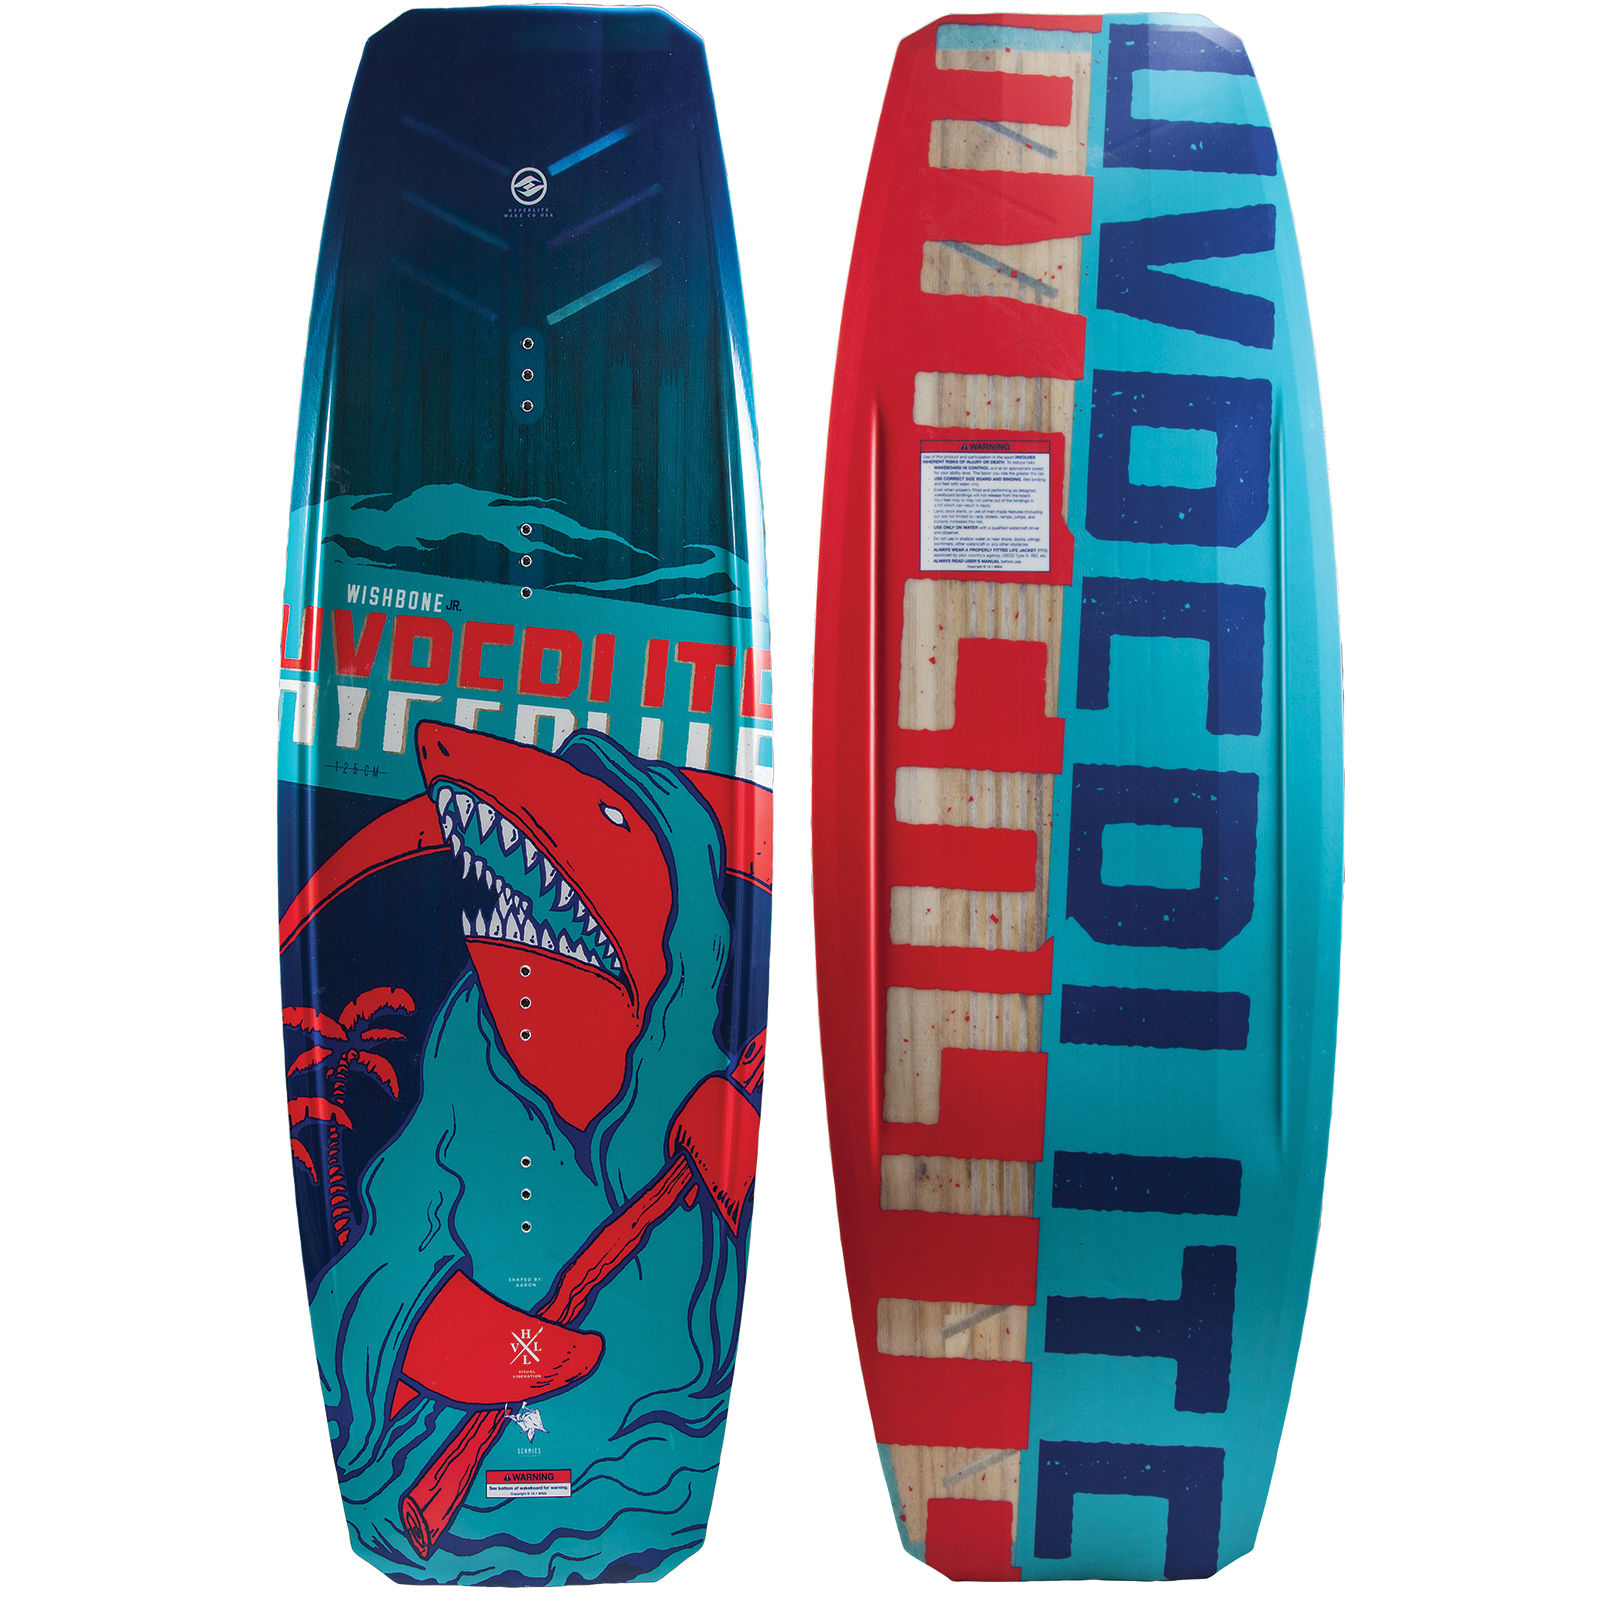 WISHBONE 125 JR. WAKEBOARD HYPERLITE 2018